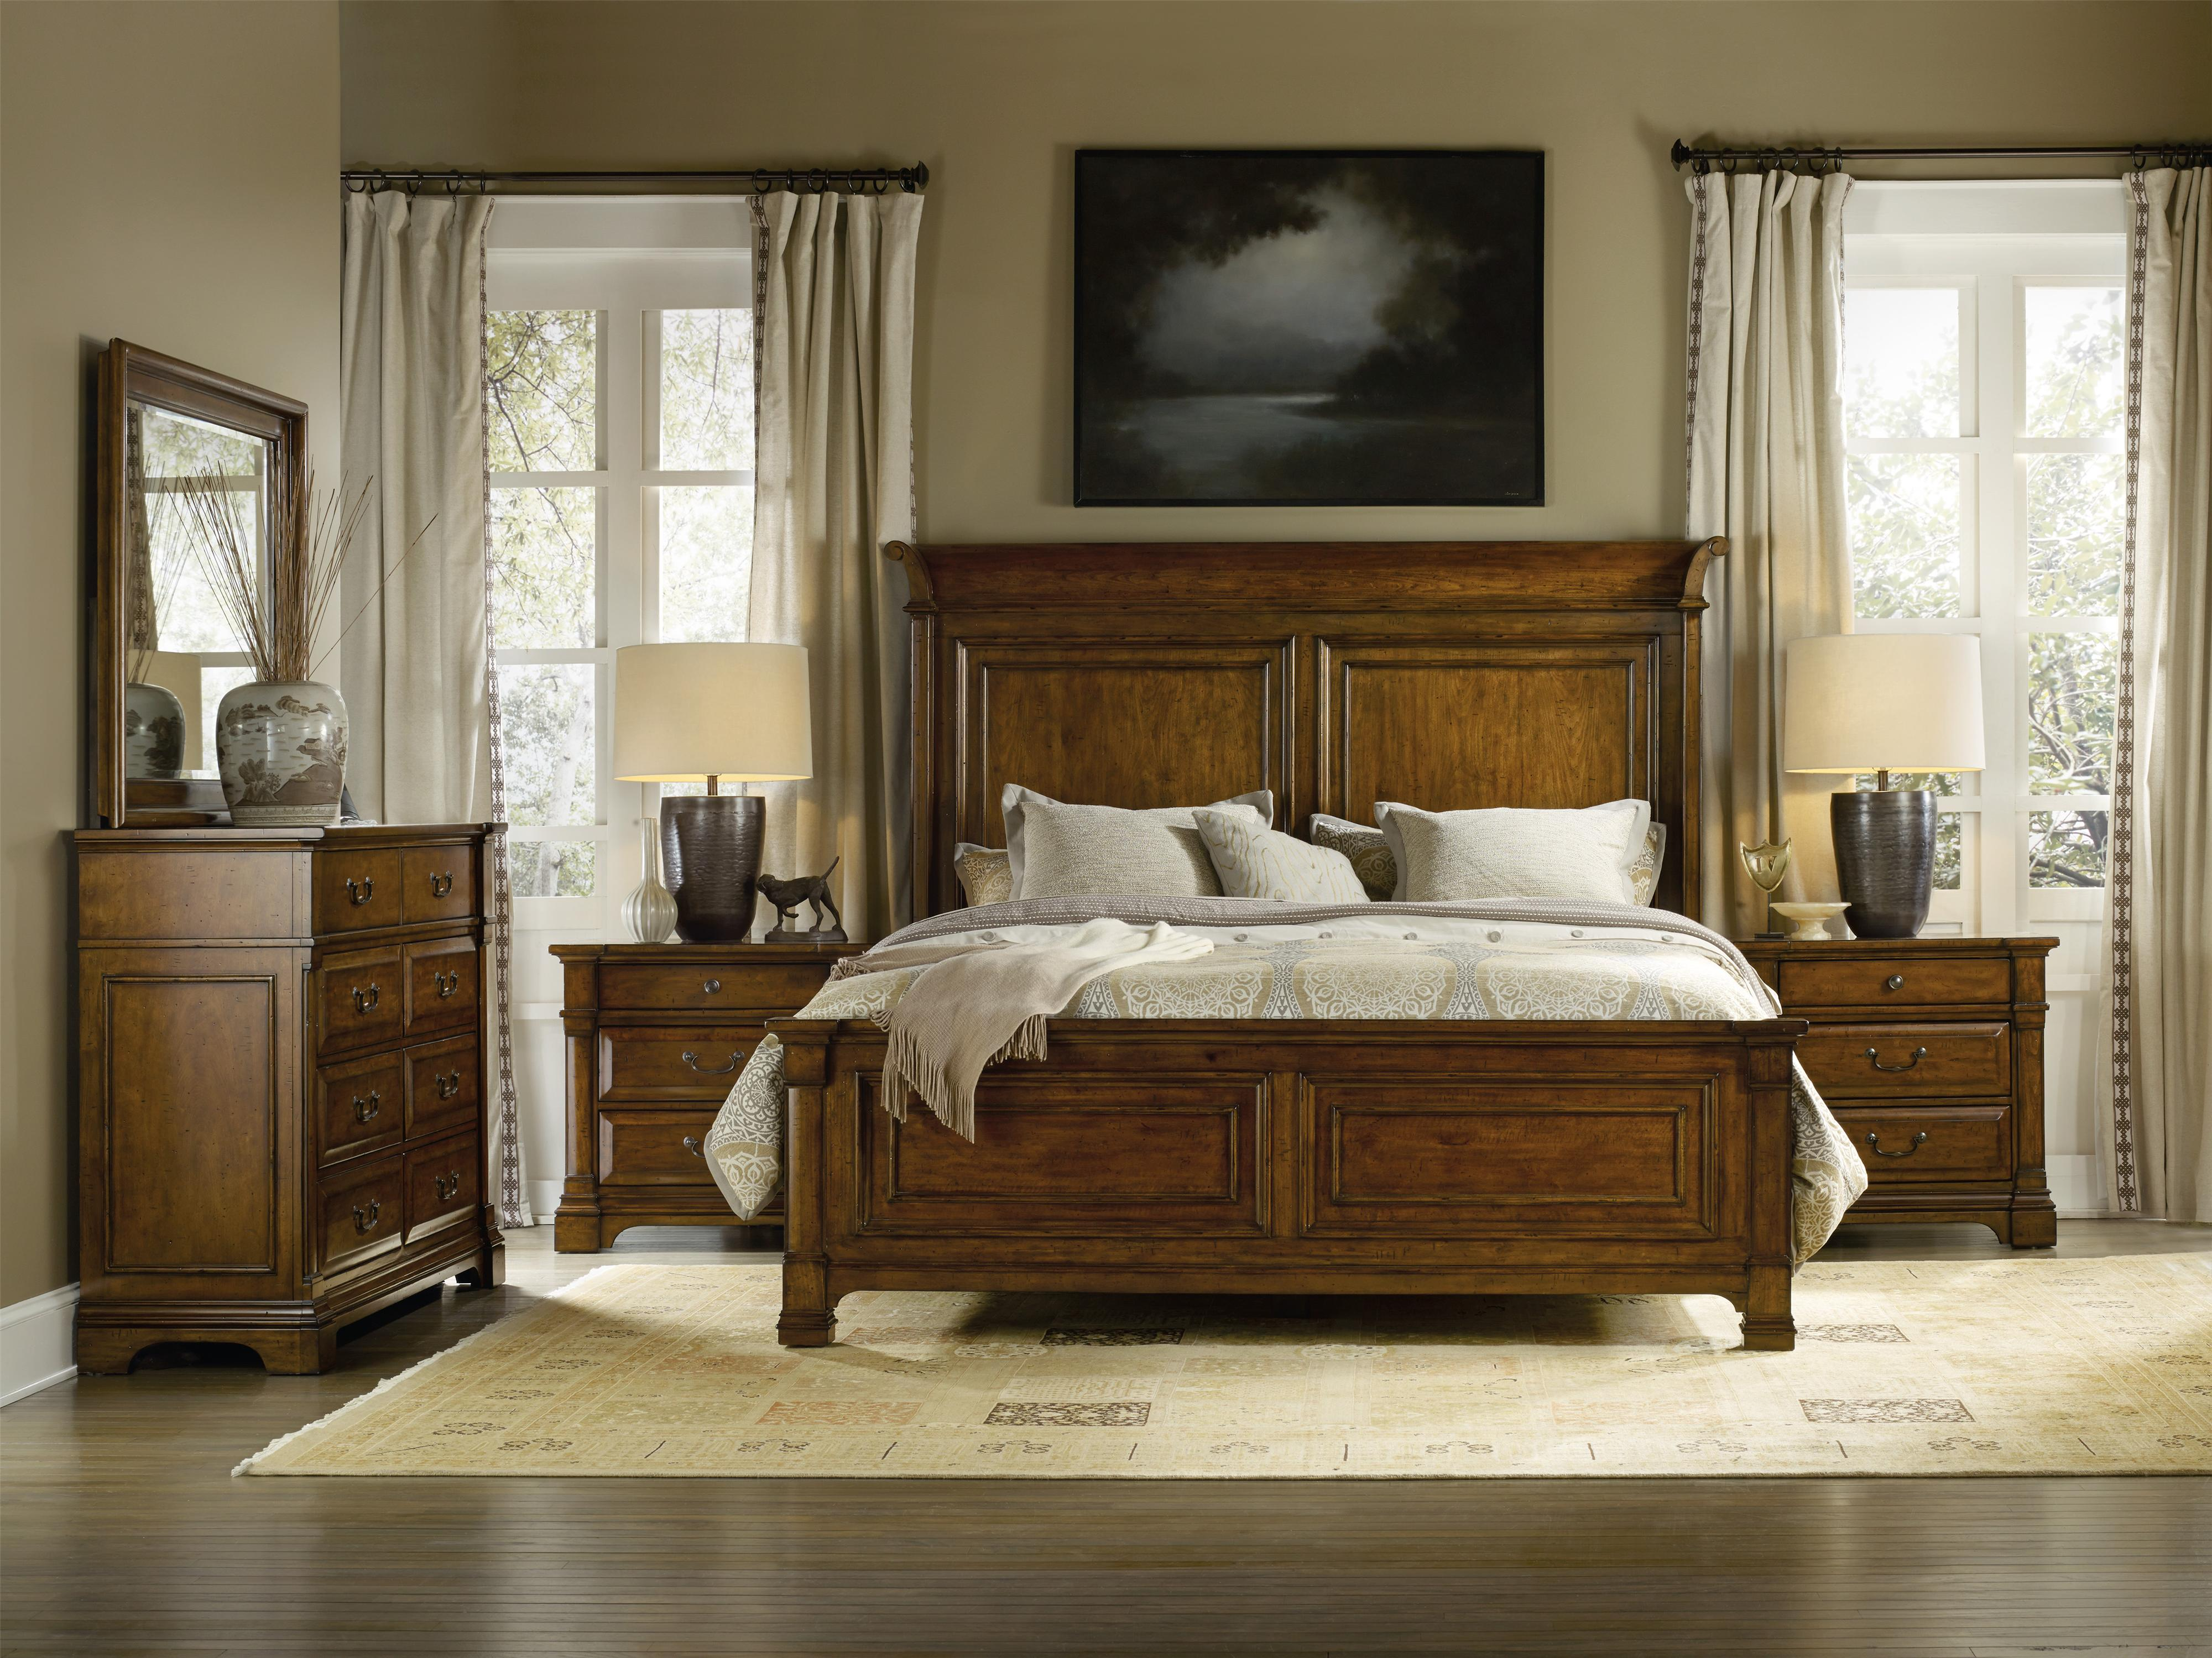 Hooker Furniture Tynecastle California King Panel Bed Group - Item Number: 5323 CK Bedroom Group 1